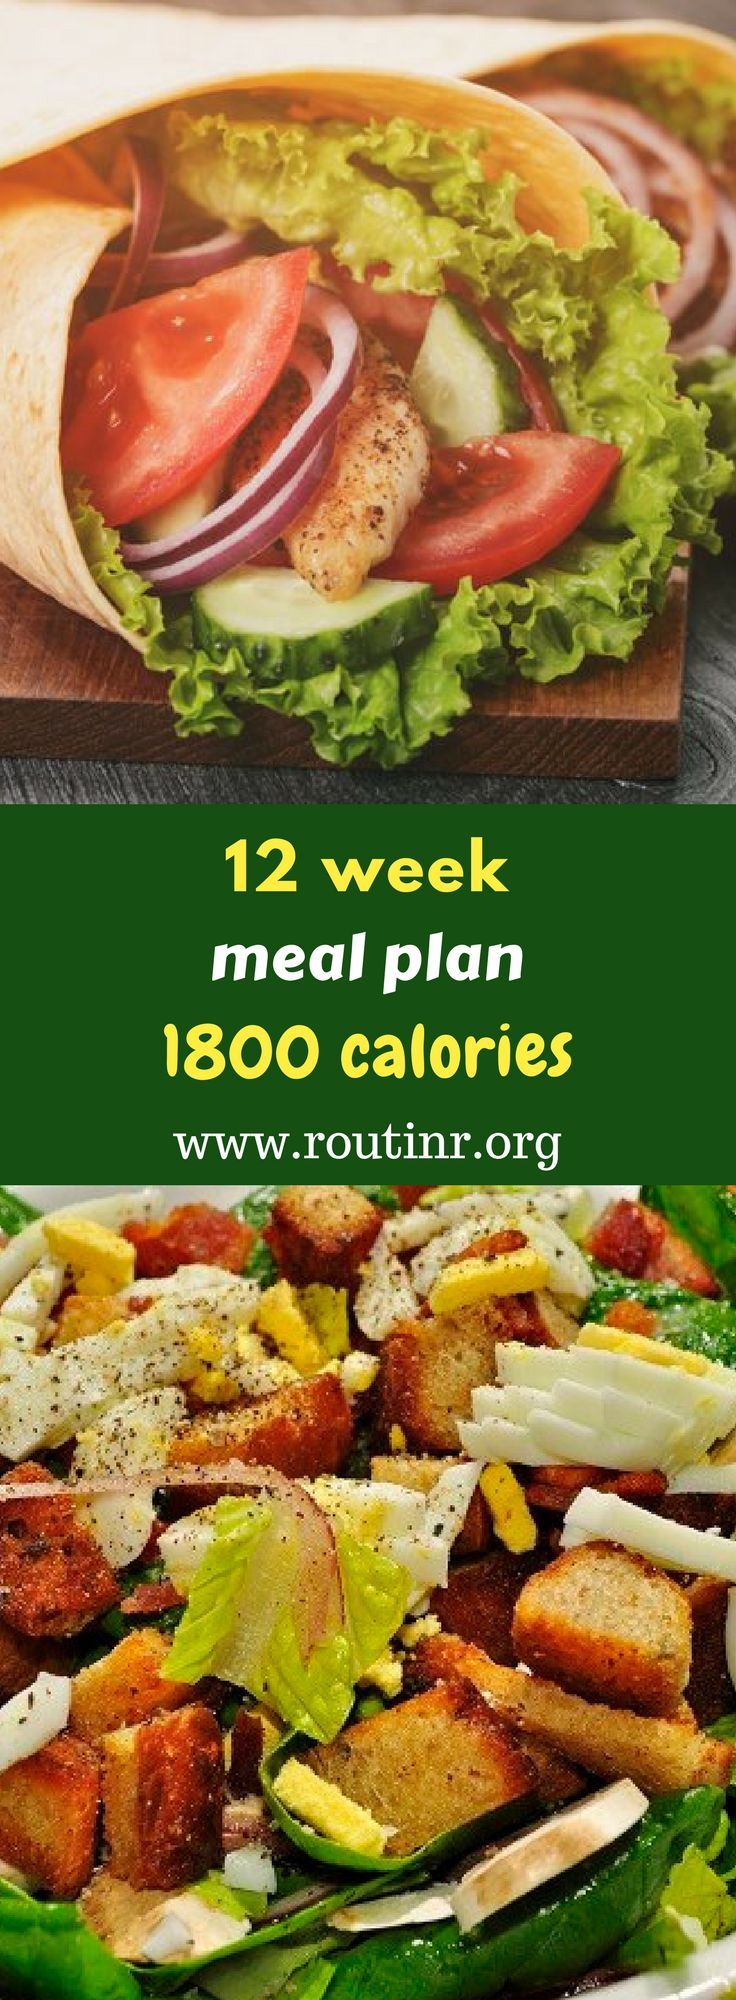 Paleo Meal Plans: 12 week meal plan 1800 calories. An 1800 calorie diet plan calls for three meals and three snacks each day to provide your body with sustained energy. Find out more at: https://routinr.org/routines/12-week-meal-plan-1800-calories